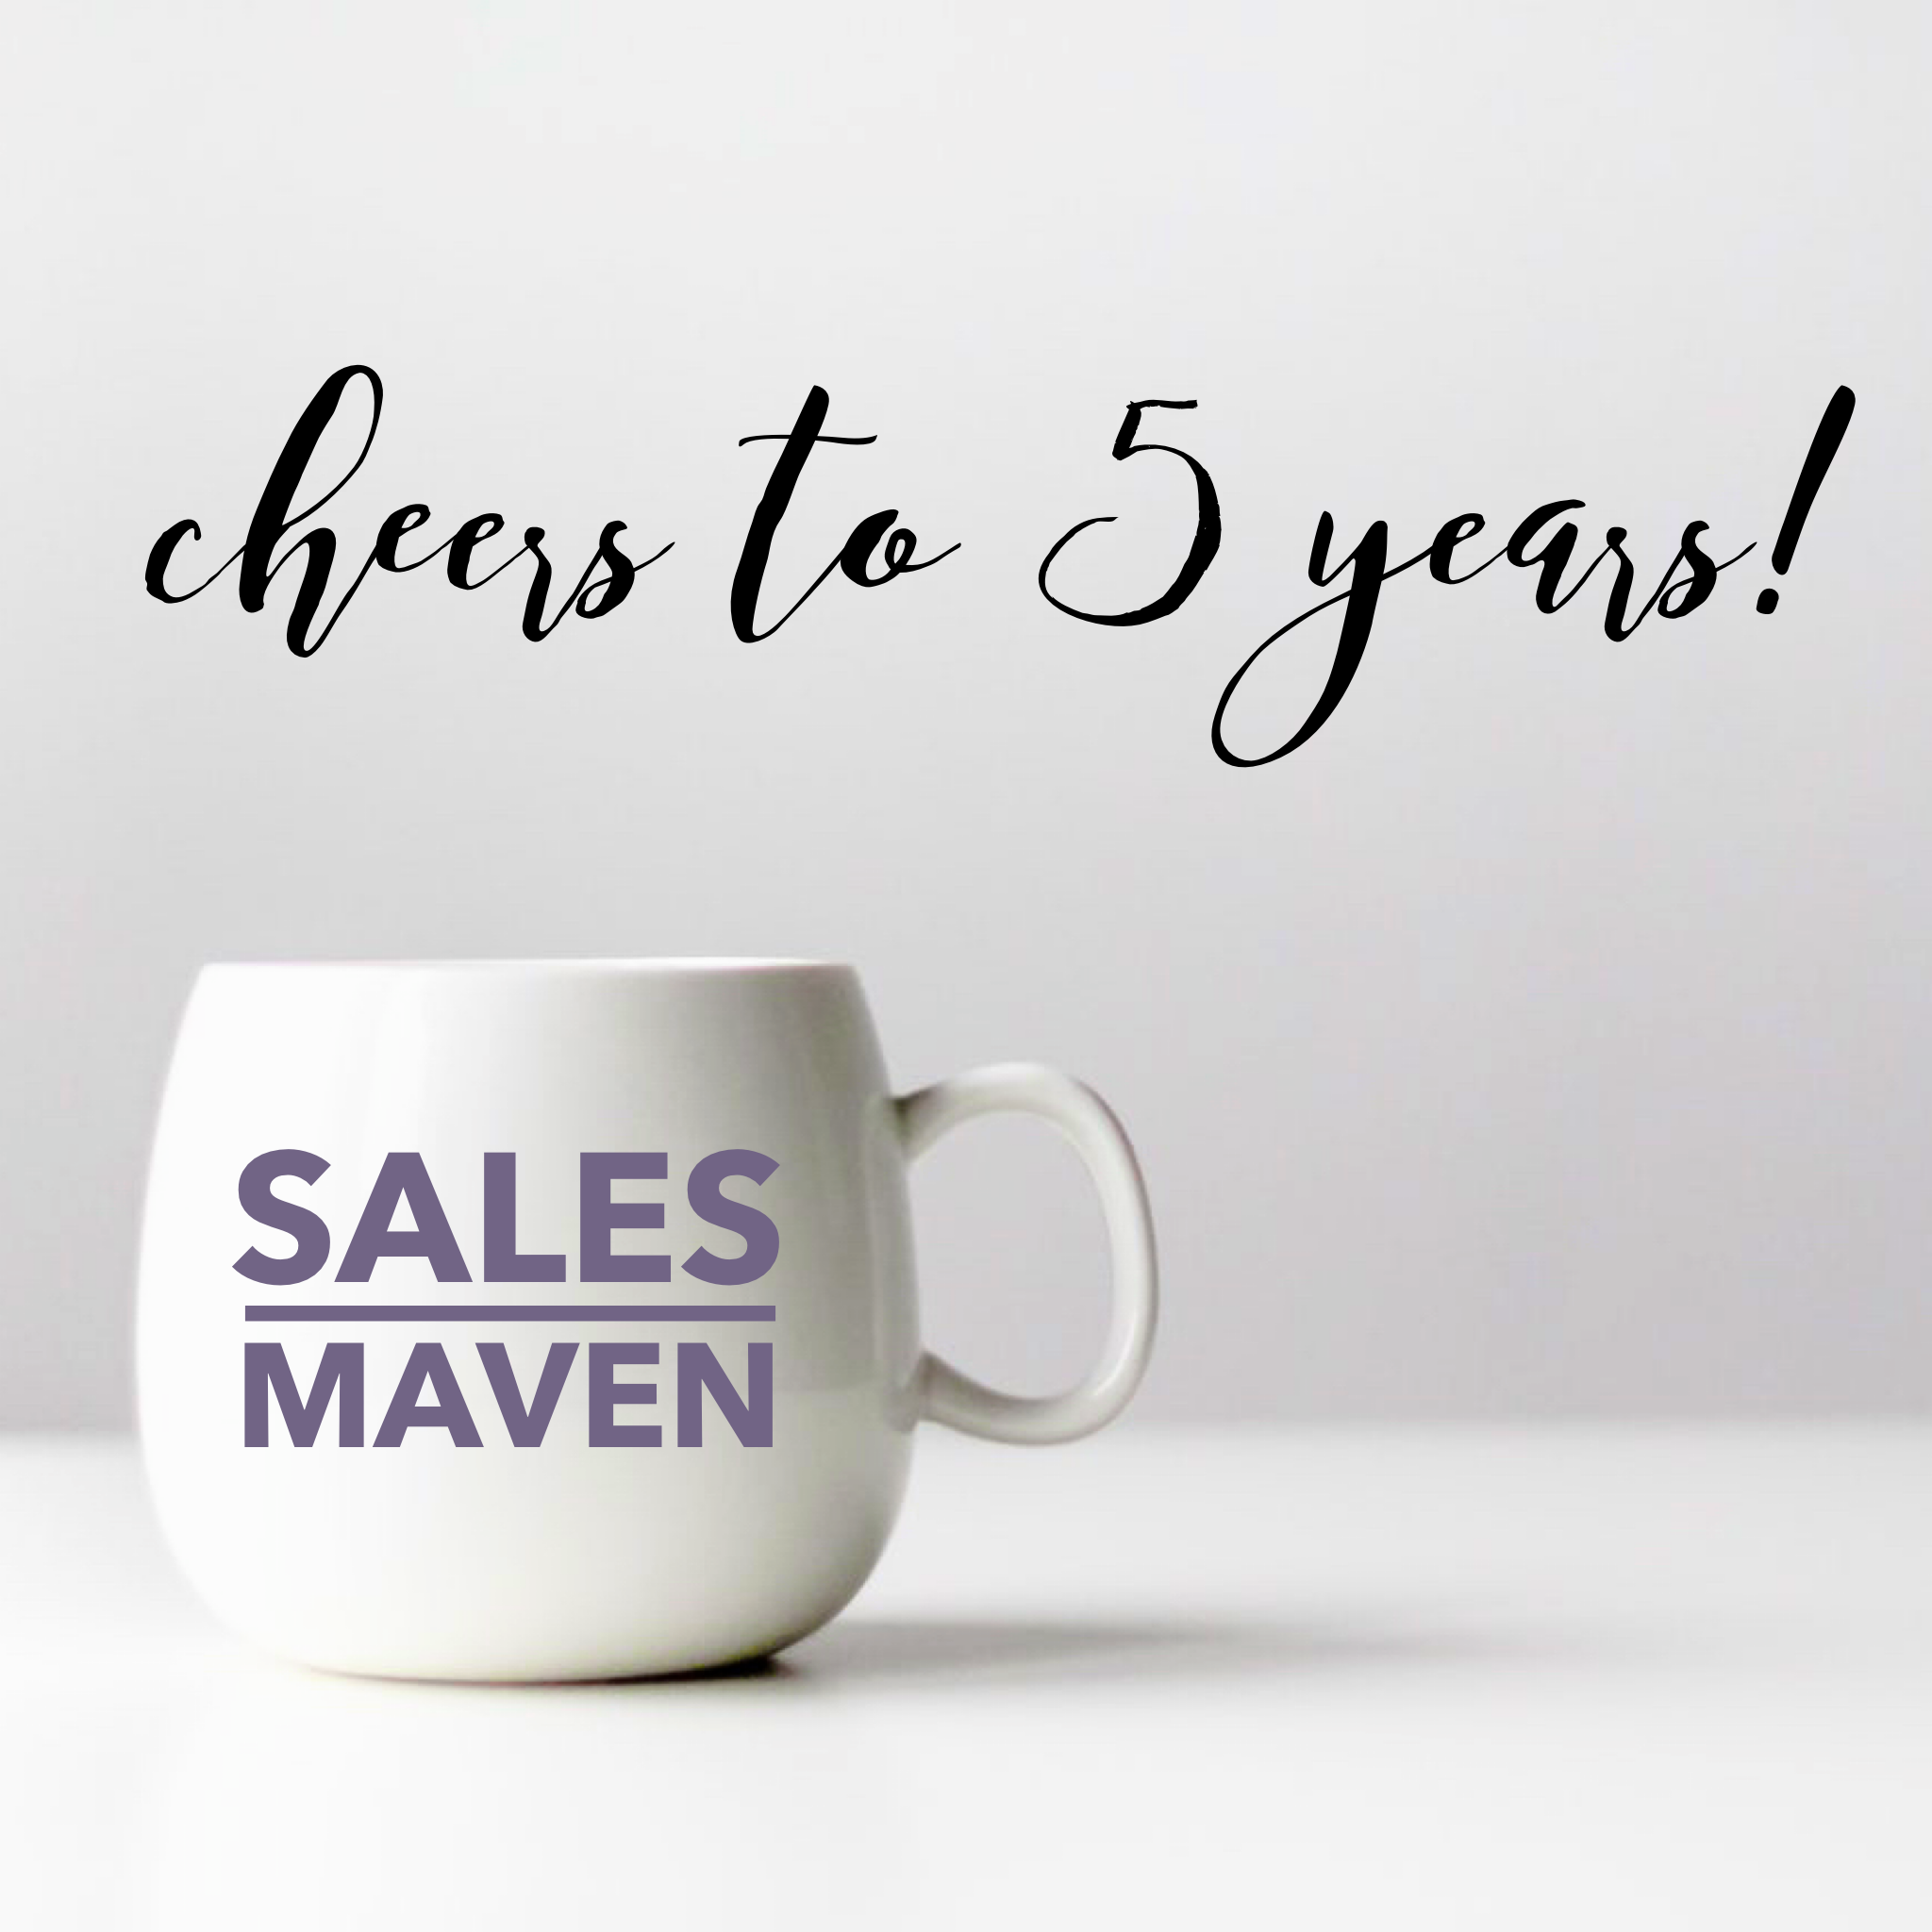 Sales Maven, 5 years in business, sales trainer